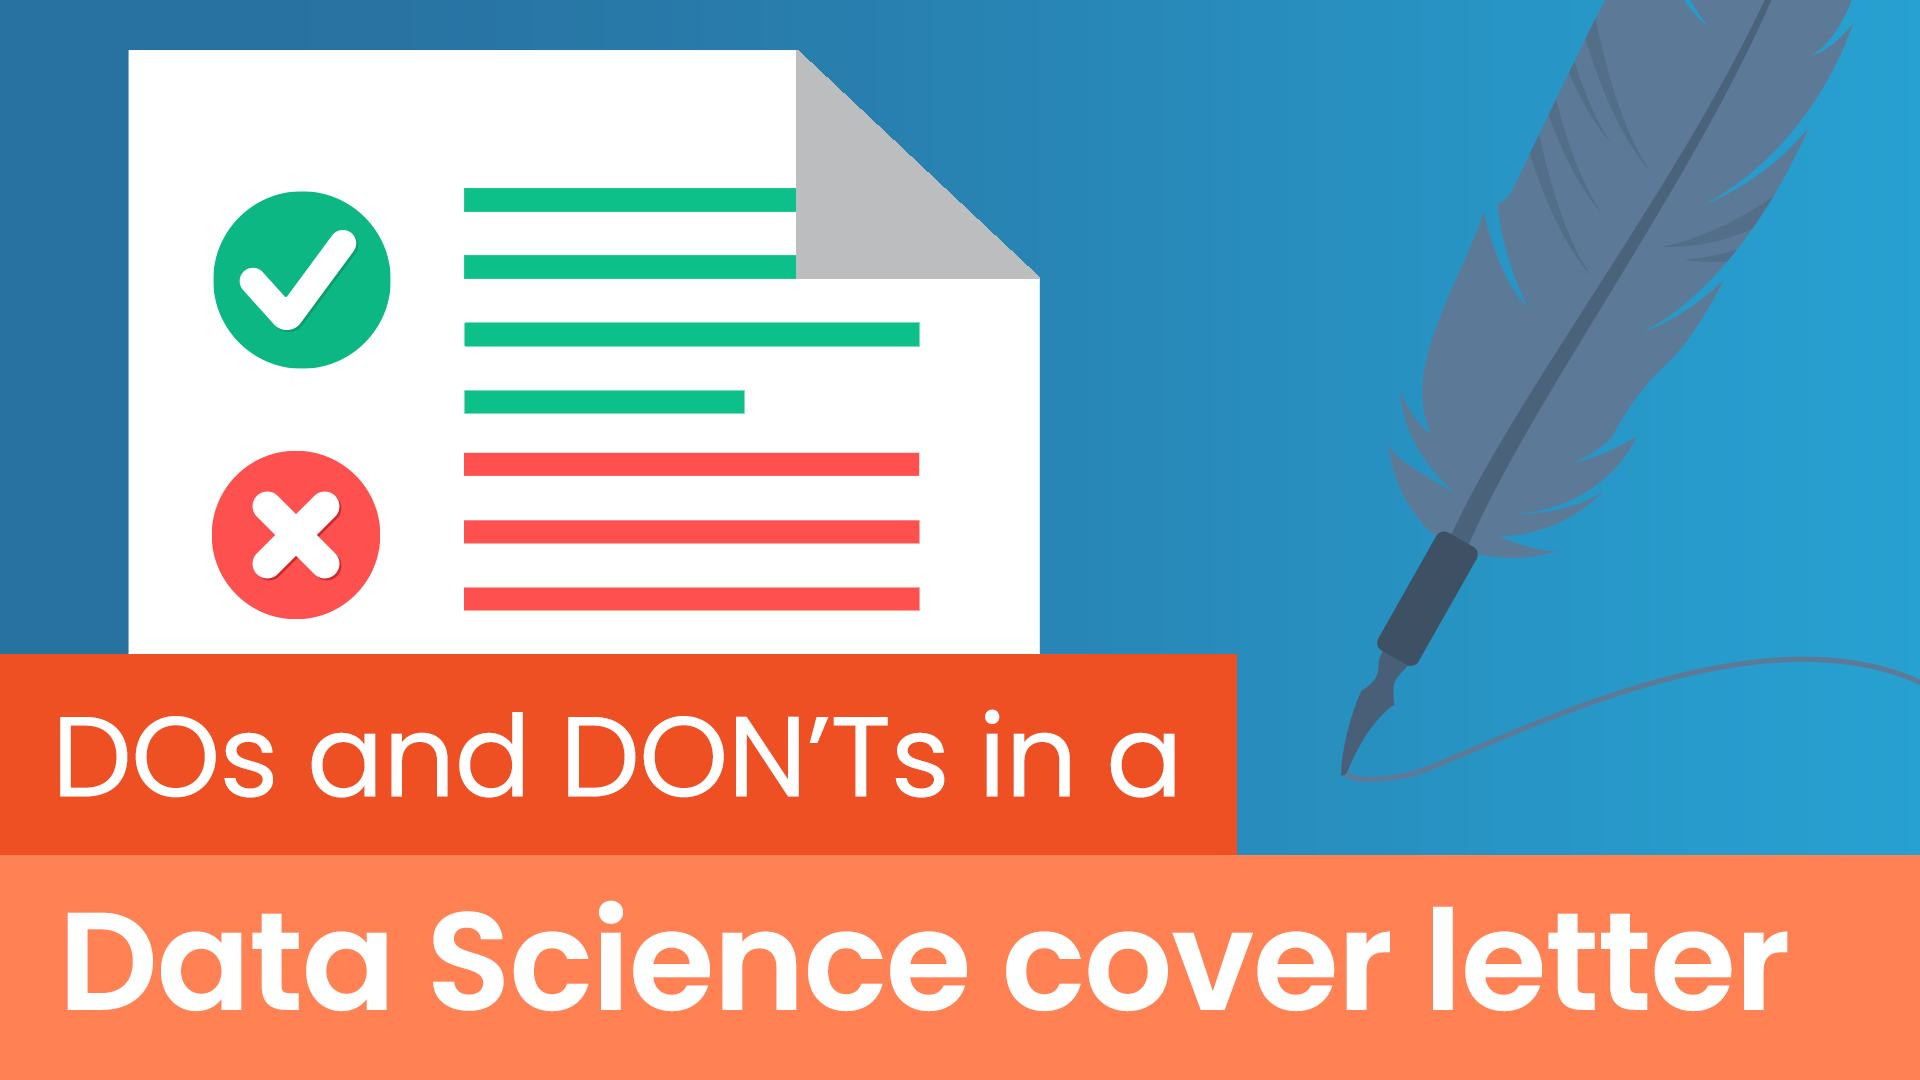 data science cover letter dos and don'ts , dos and don'ts in a data science cover letter, data science cover letter tips